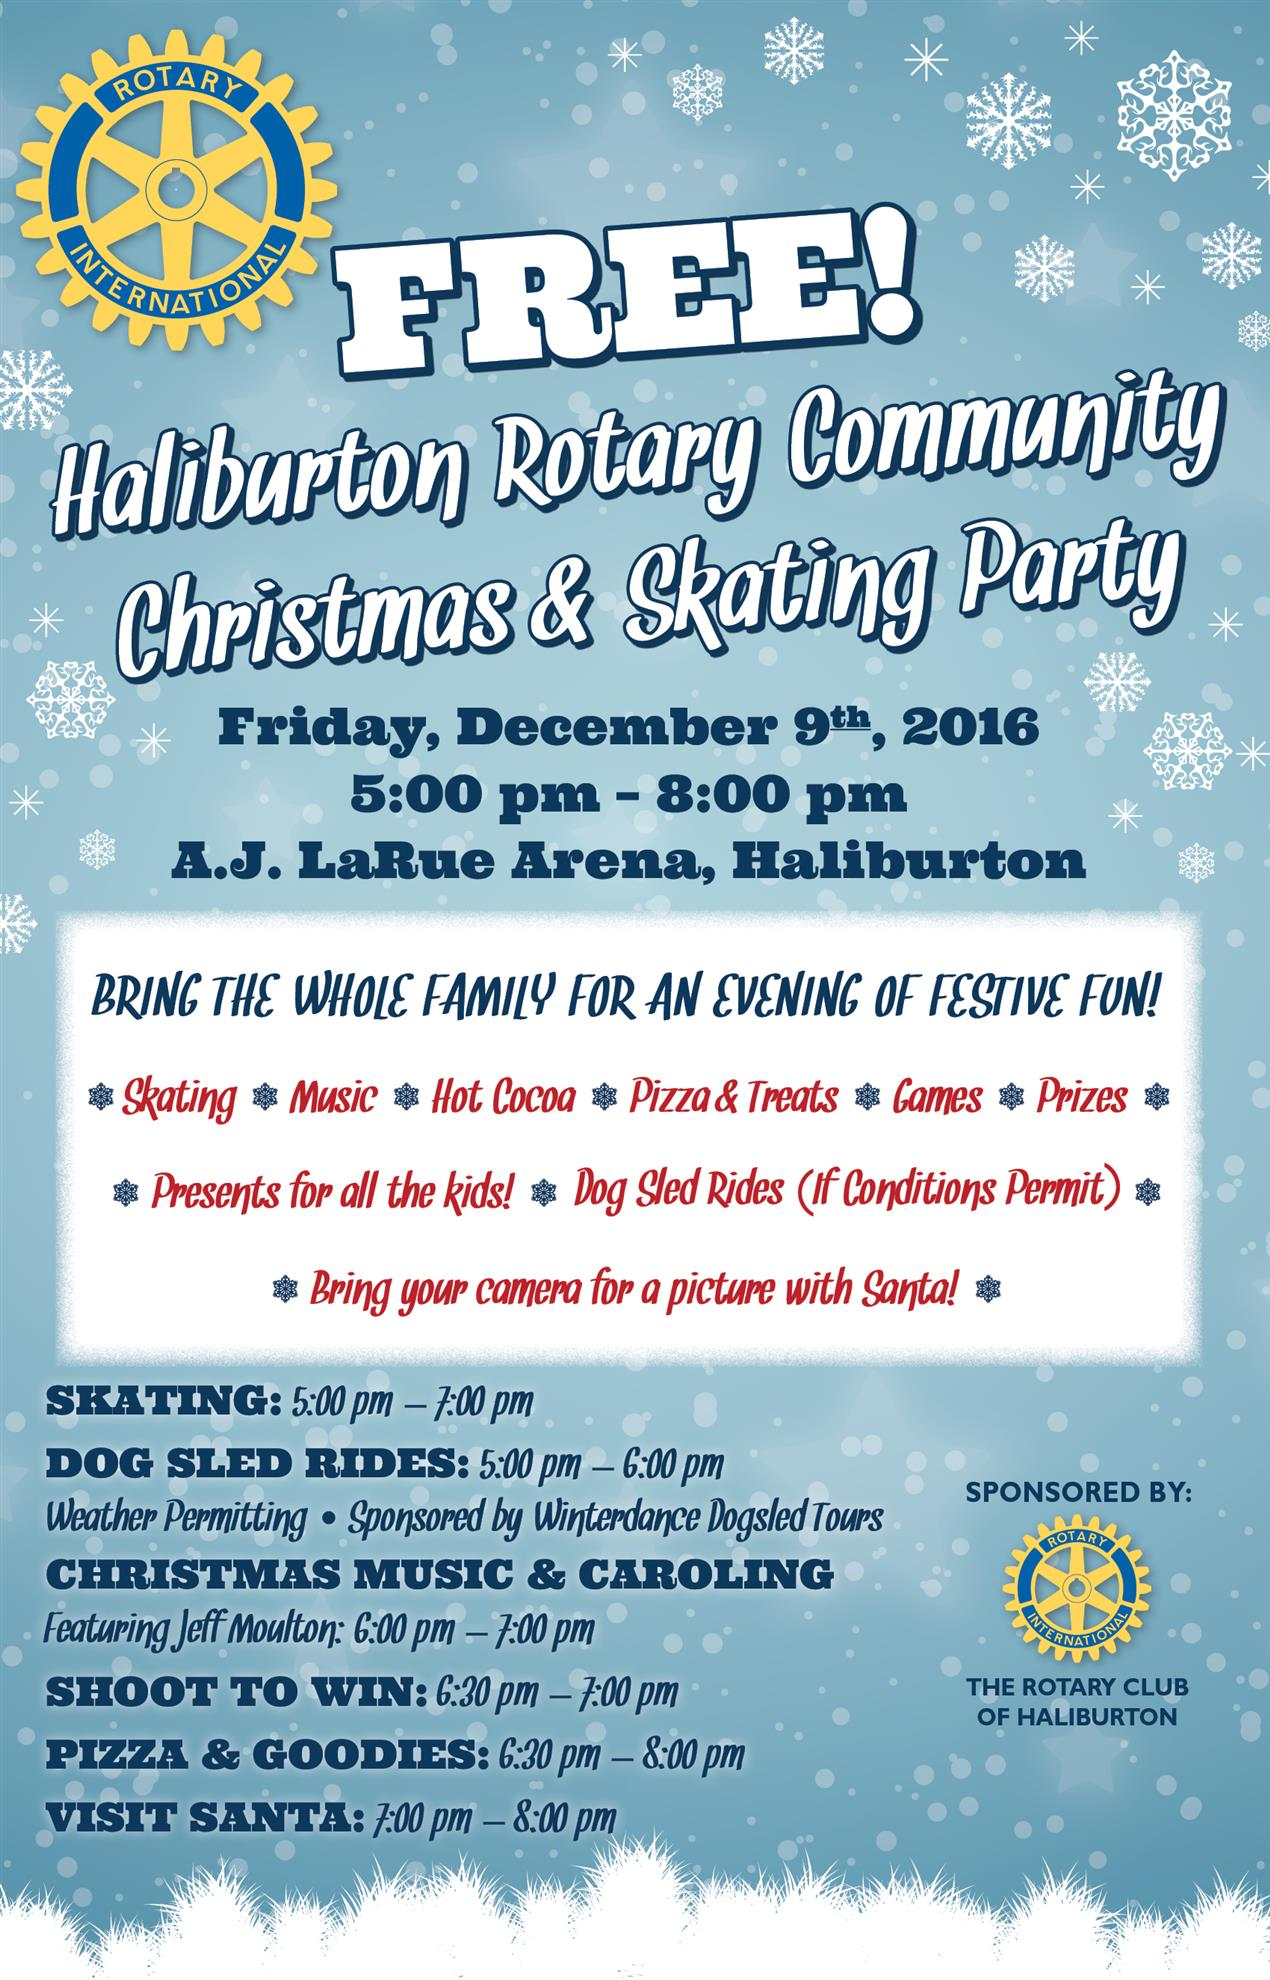 Stories rotary club of haliburton rotary community christmas party spiritdancerdesigns Gallery